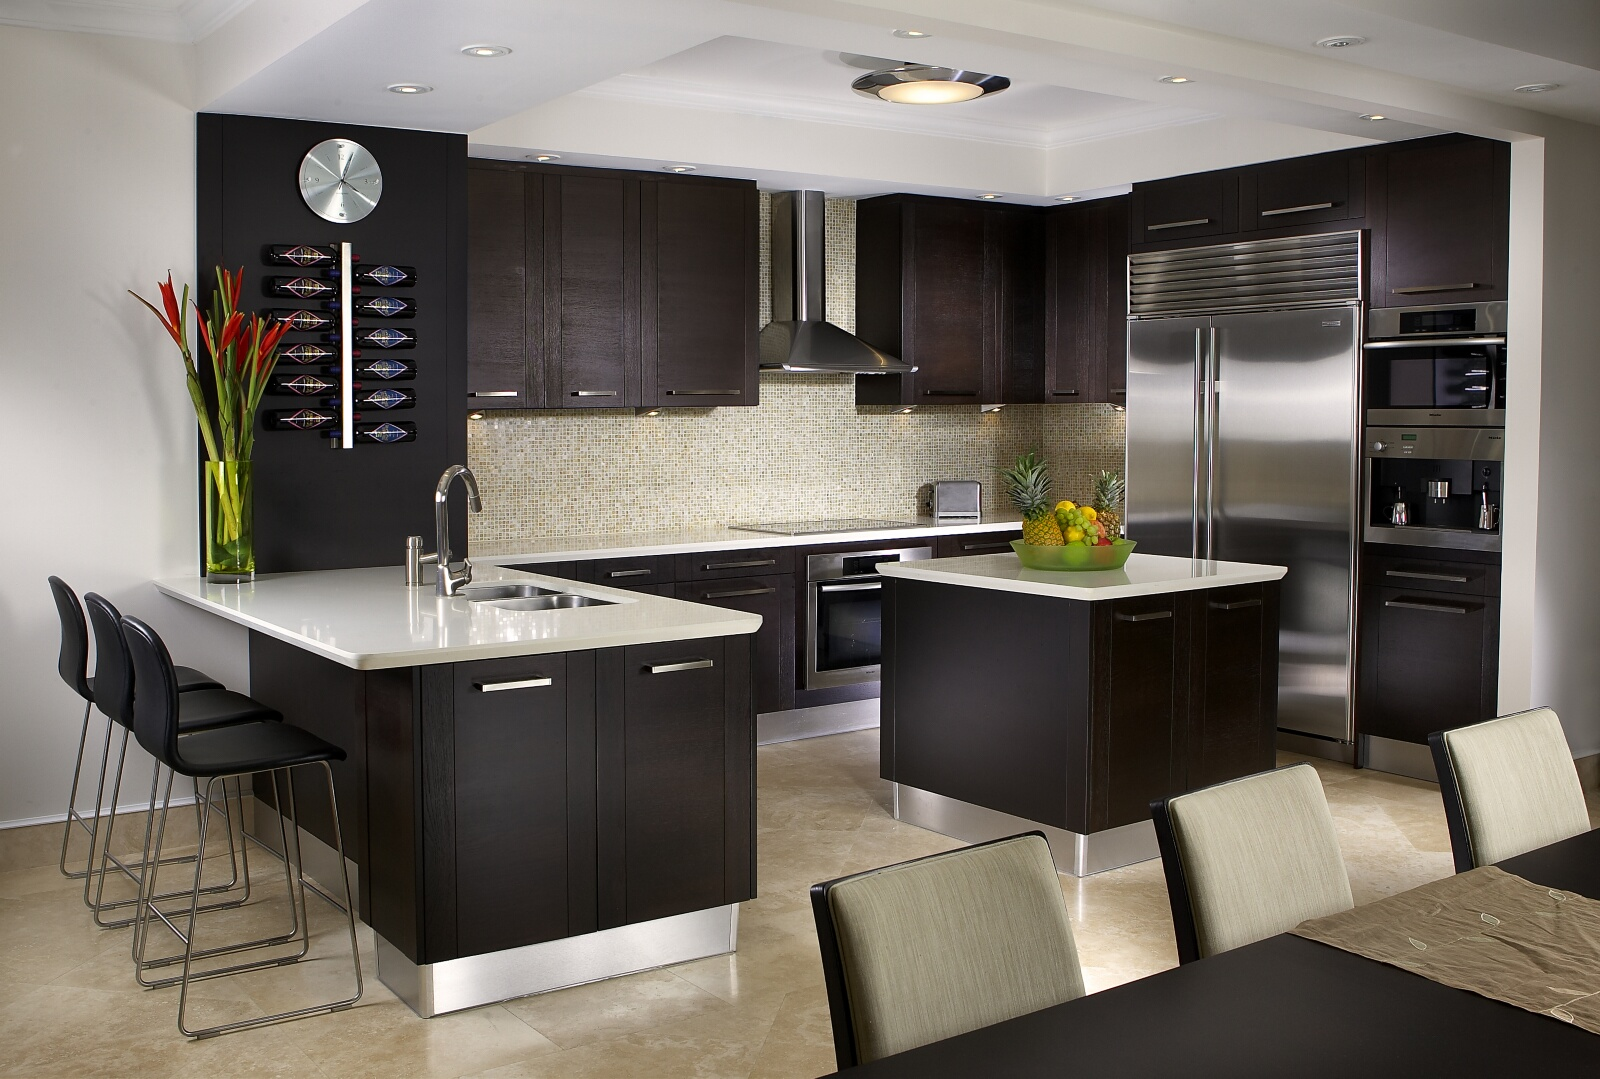 Kitchen interior design services miami florida Kitchen interior design